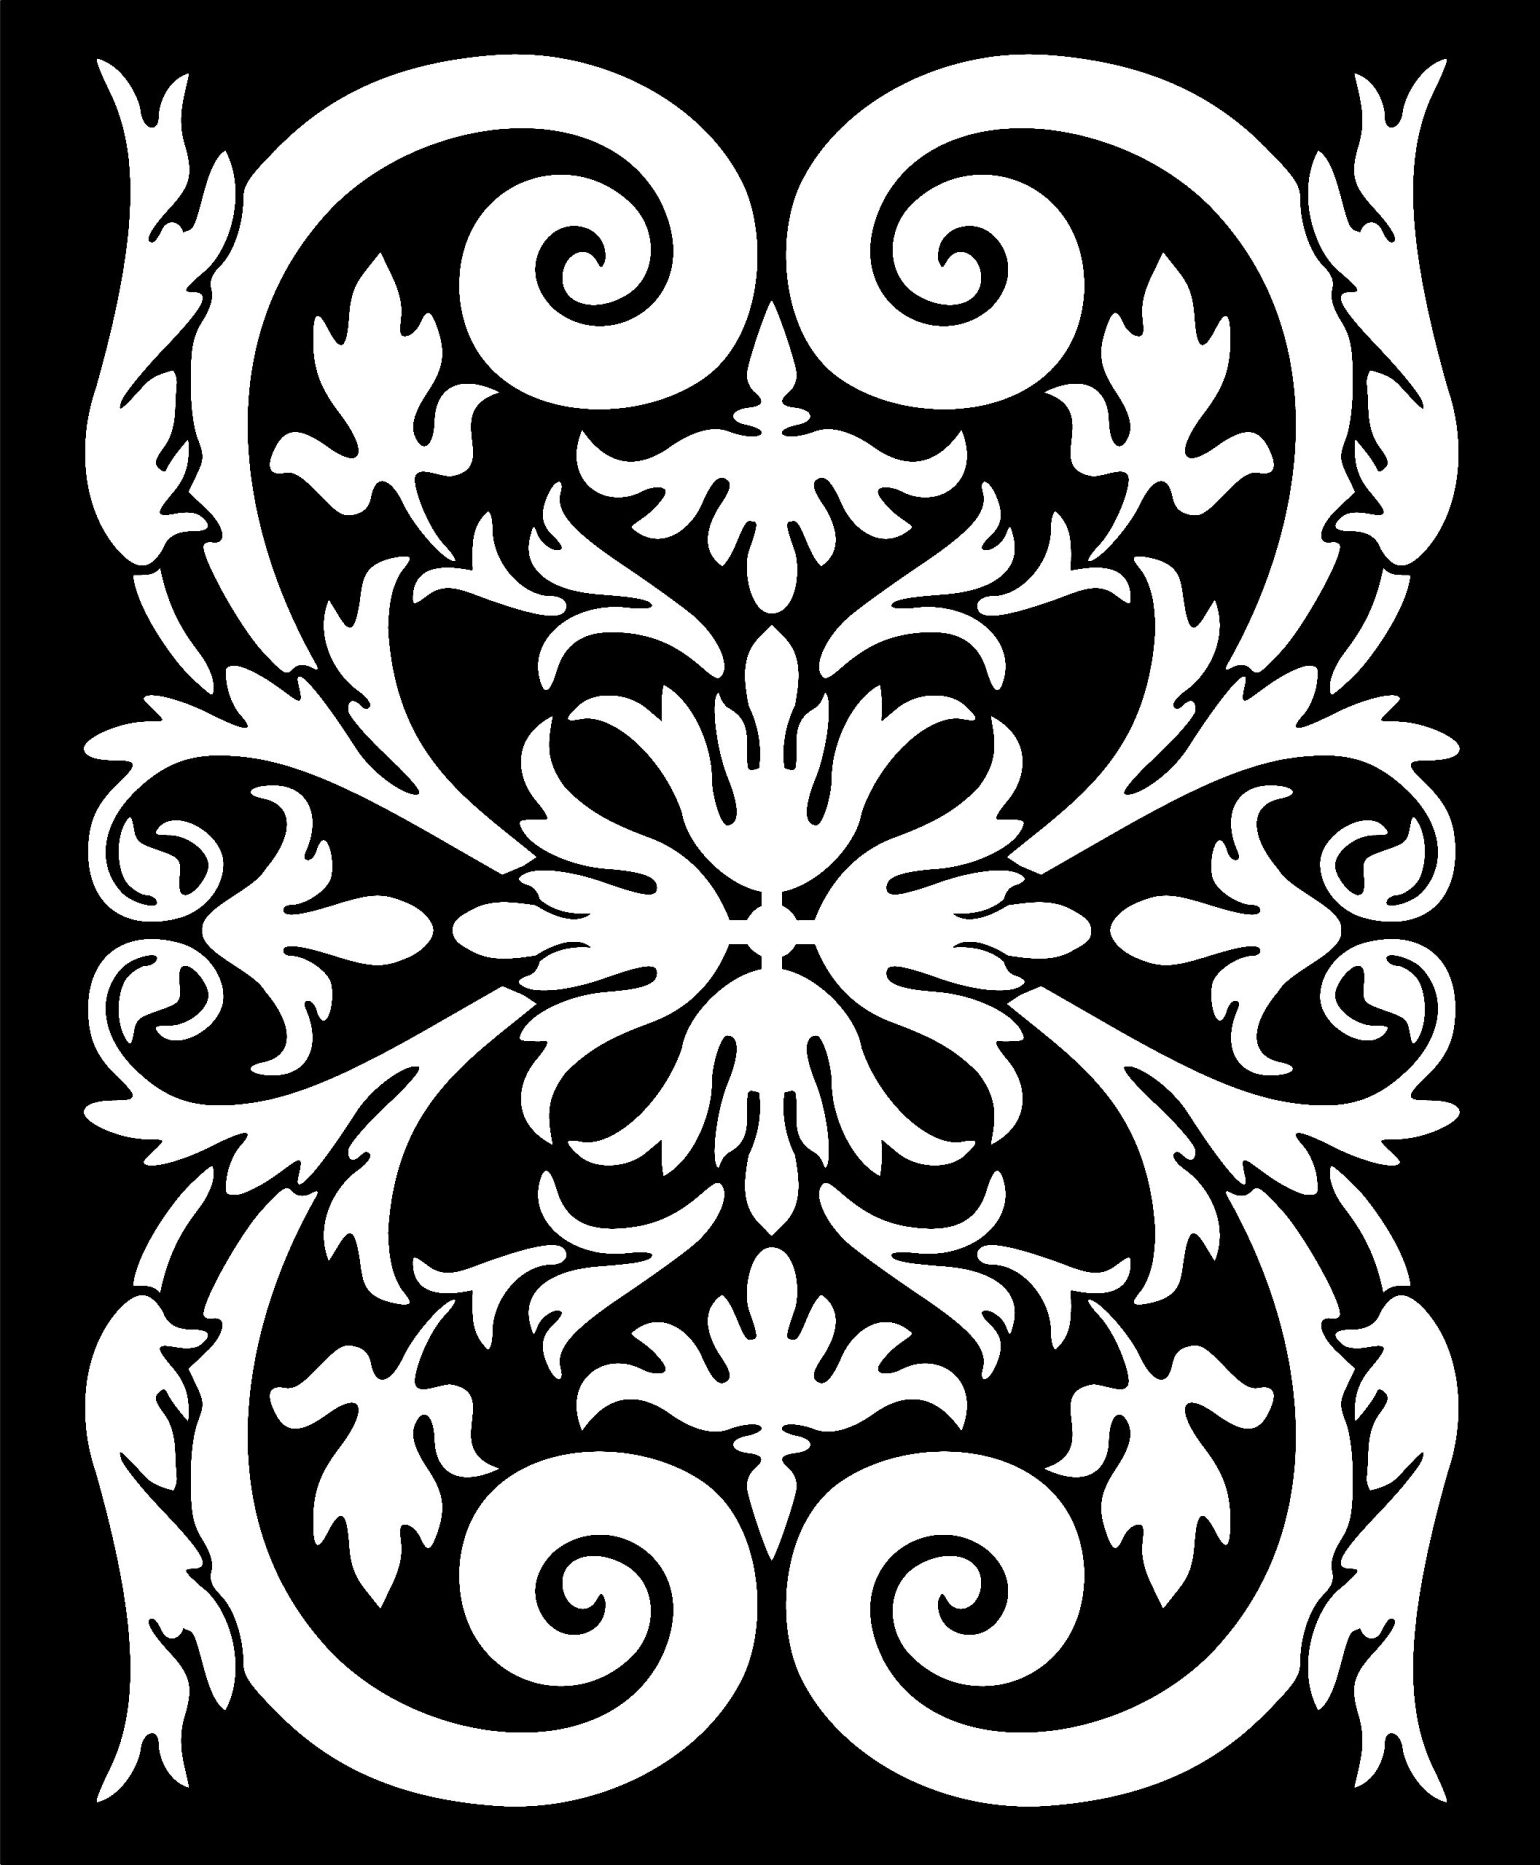 Decorative Screen Patterns For Laser Cutting 39 Free DXF File